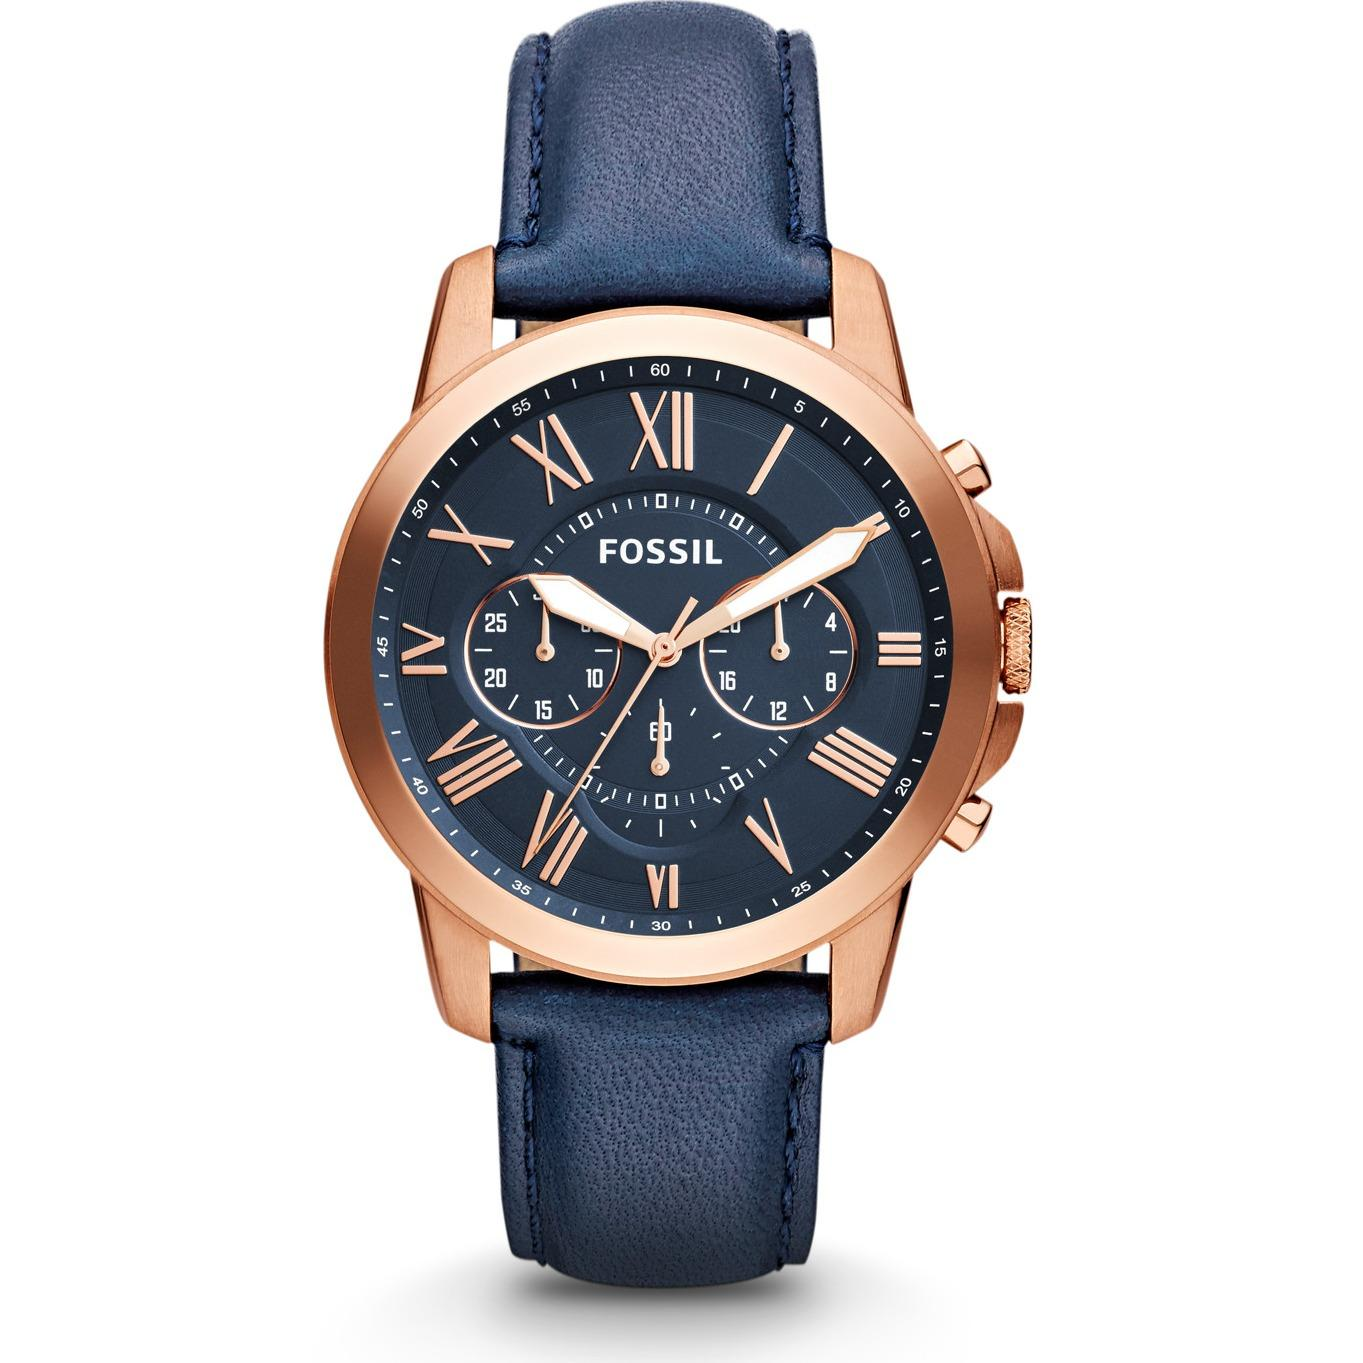 Fossil Men's Grant Navy Dial Navy Leather Watch FS4835